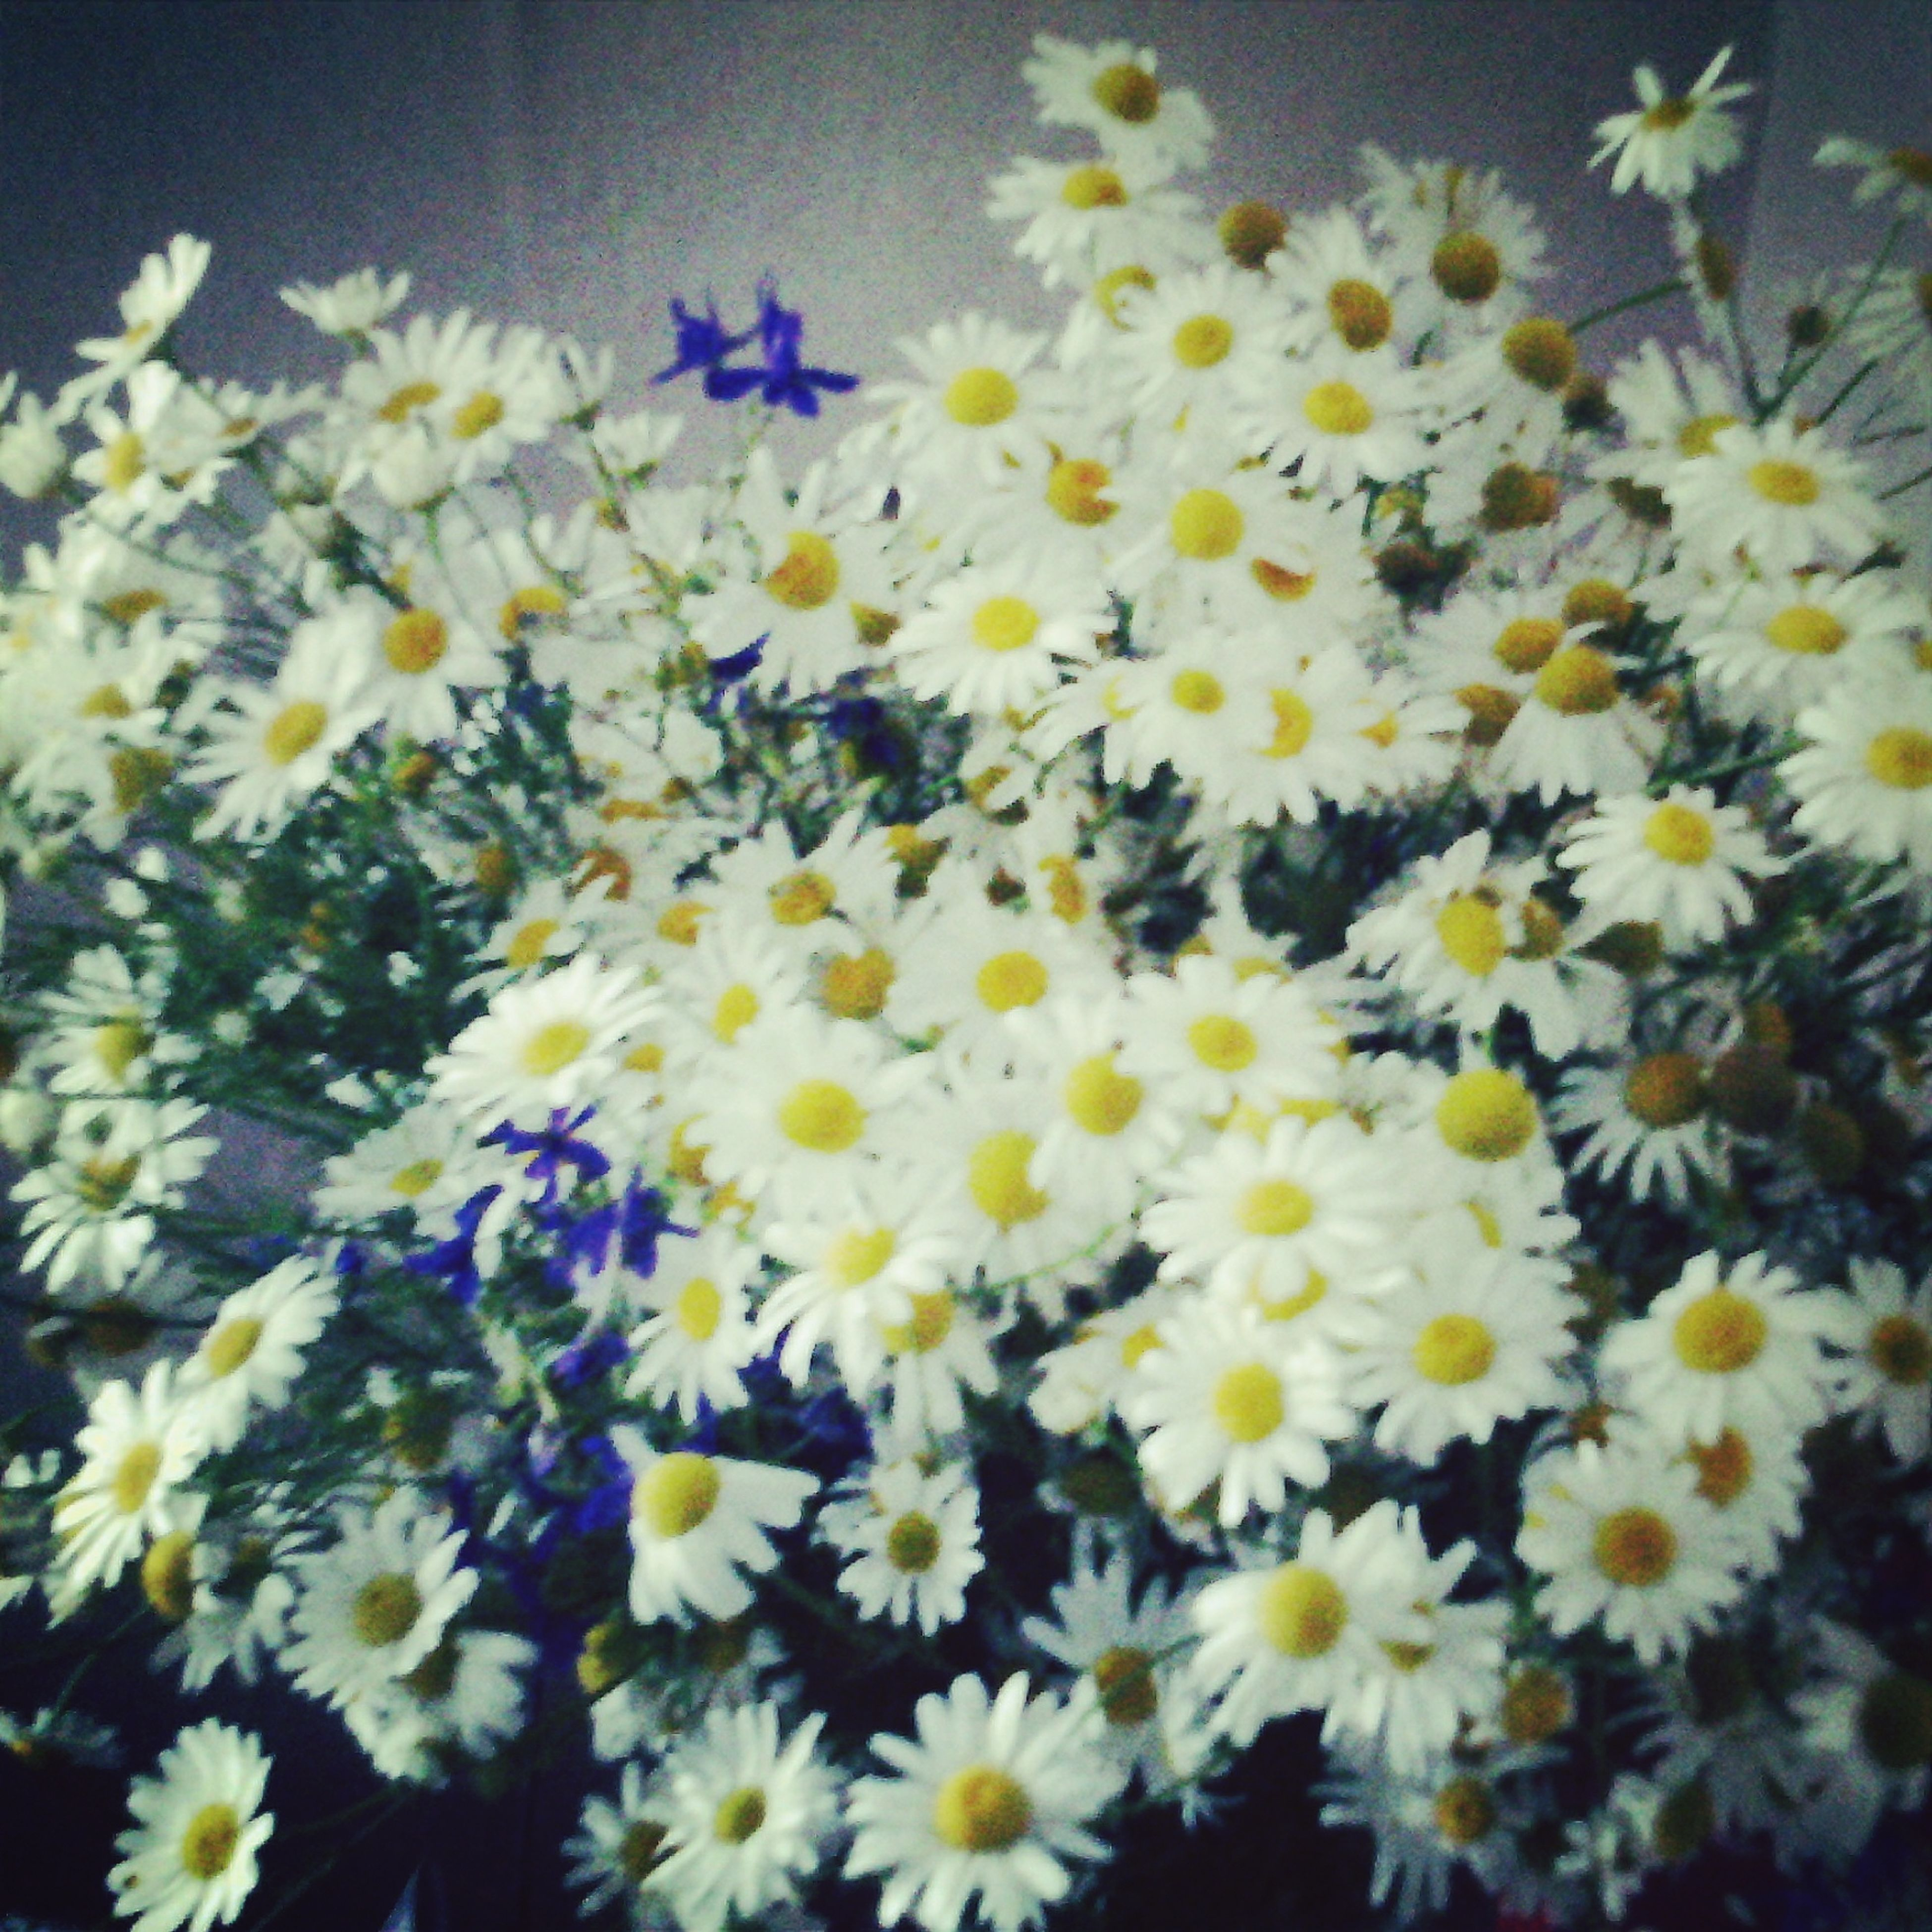 flower, freshness, petal, fragility, flower head, yellow, growth, beauty in nature, daisy, blooming, white color, plant, nature, high angle view, close-up, pollen, in bloom, abundance, no people, day